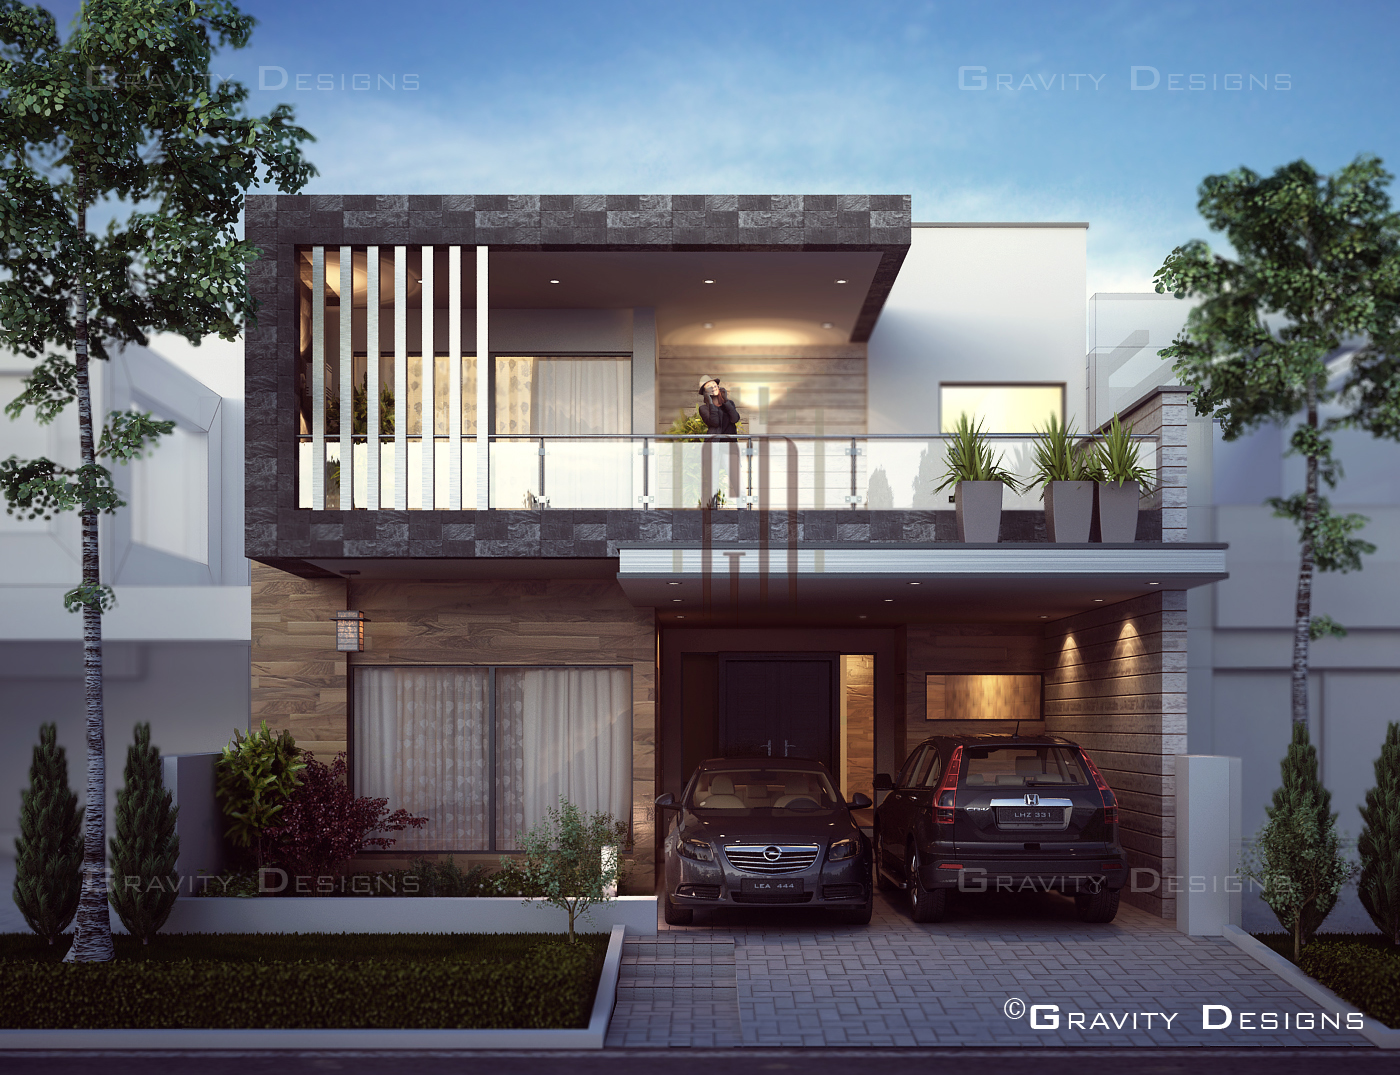 Residential exterior designs gravity design for Residential design